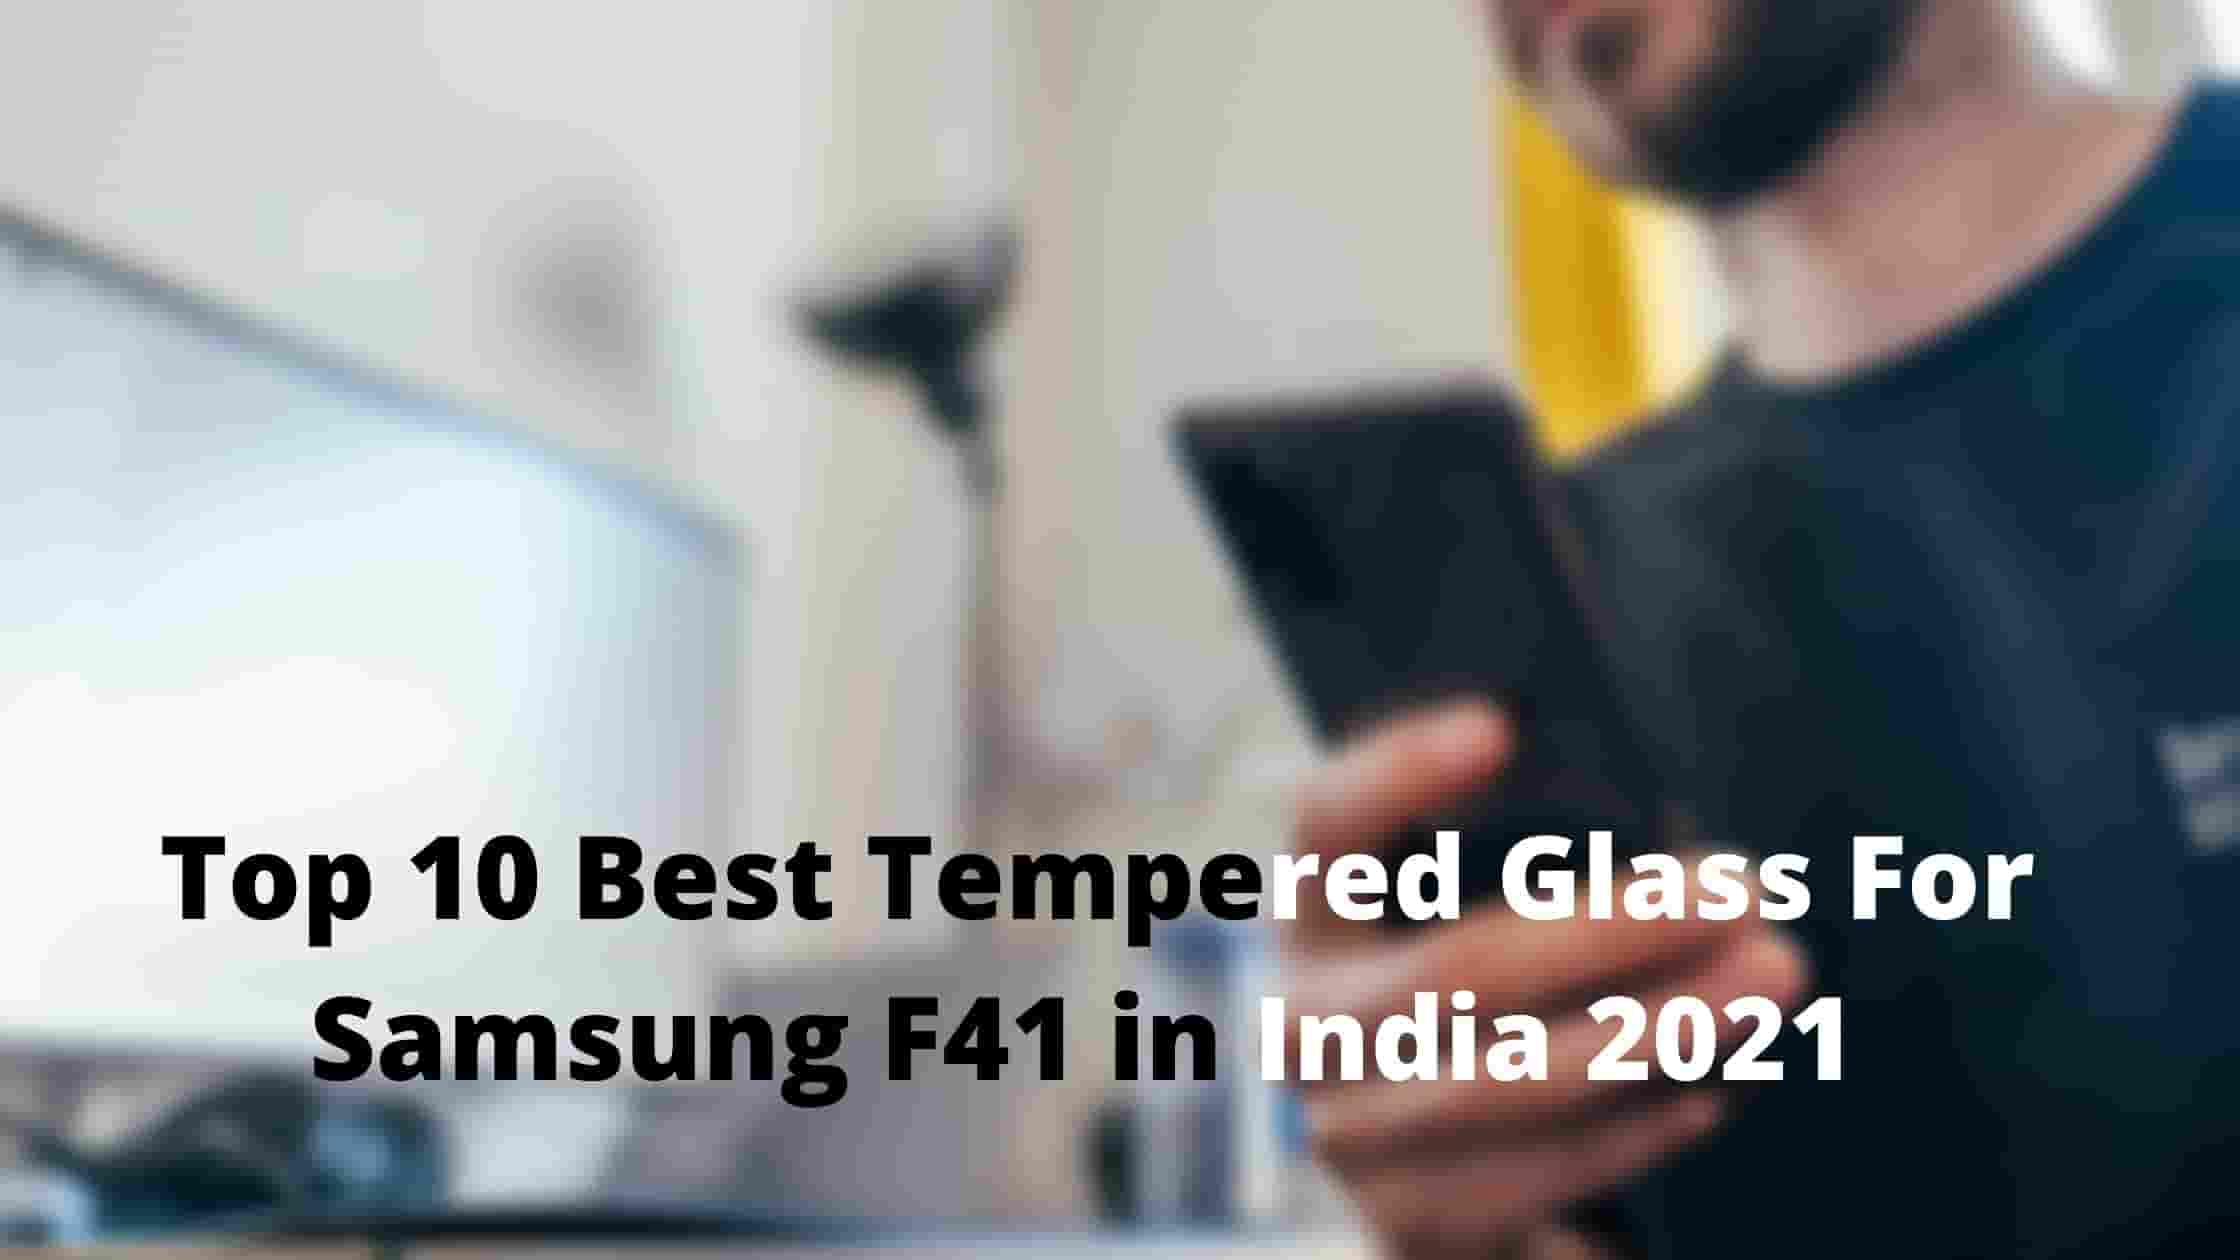 Now Top 10 Best Tempered Glass For Samsung F41 in India 2021 [Bengali]